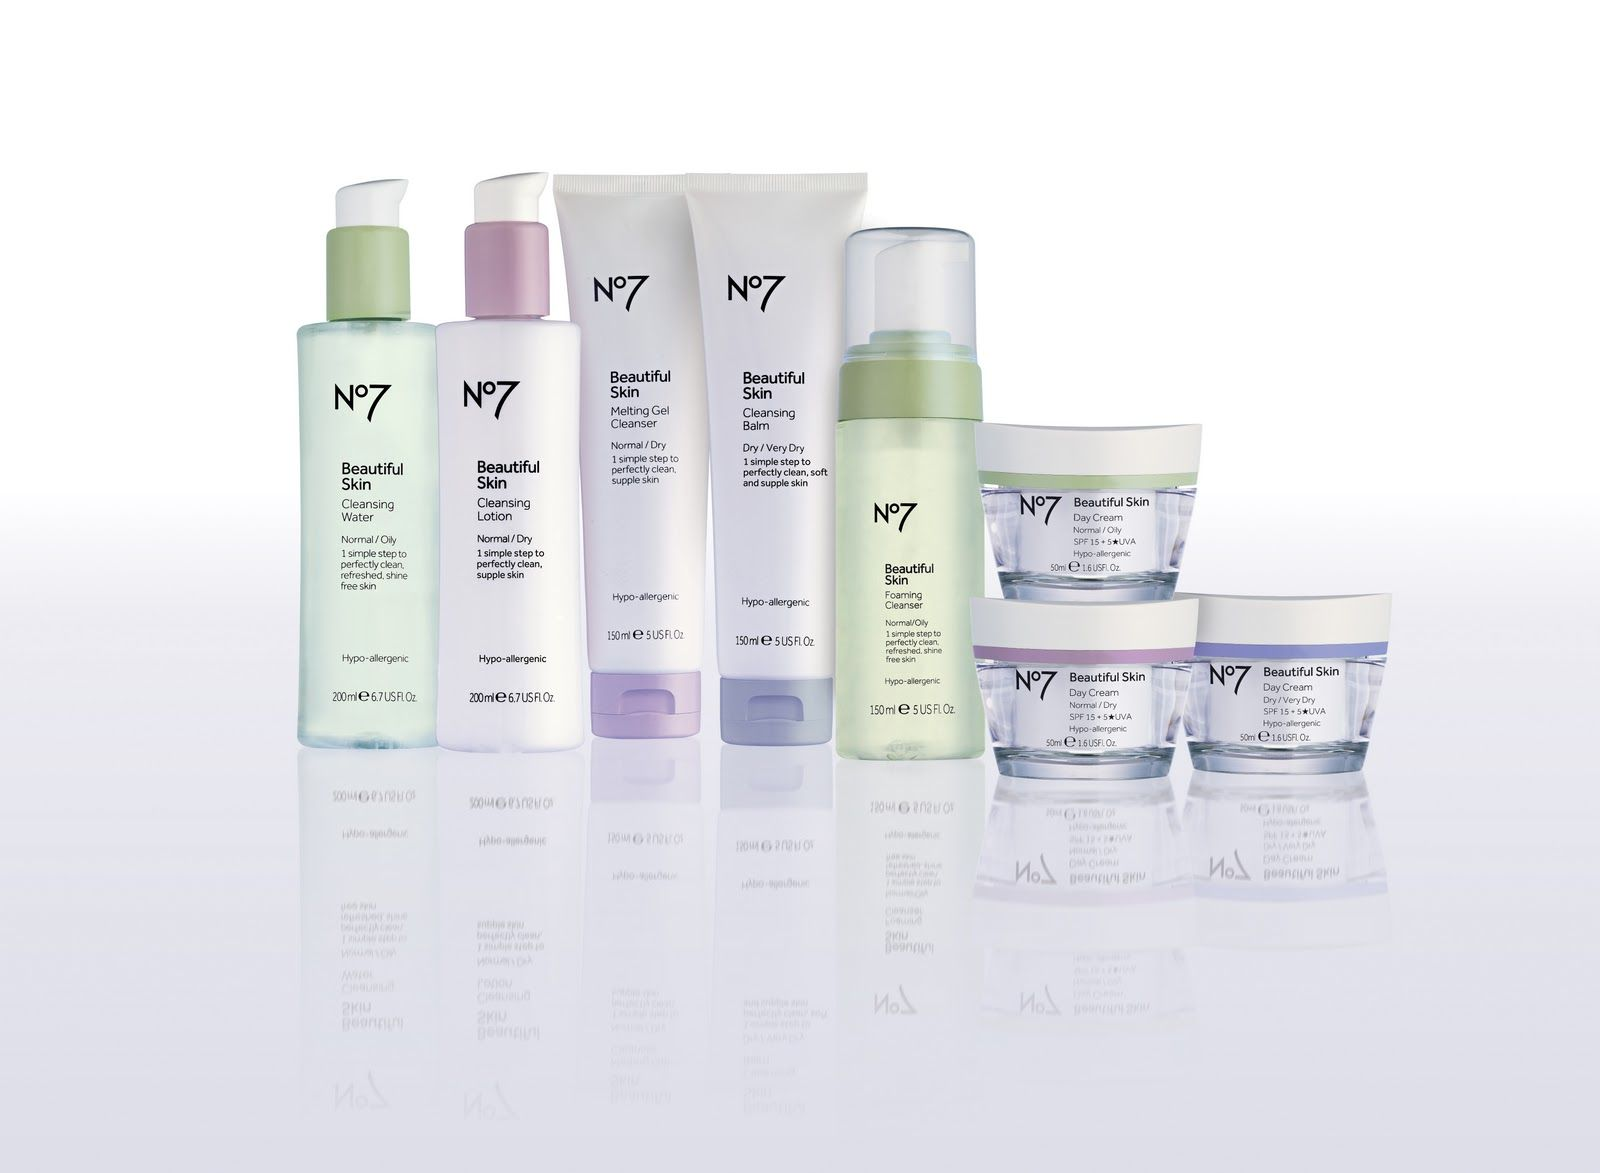 Boots No7 Beautiful Skin My New Favorite Skin Care Products From Target